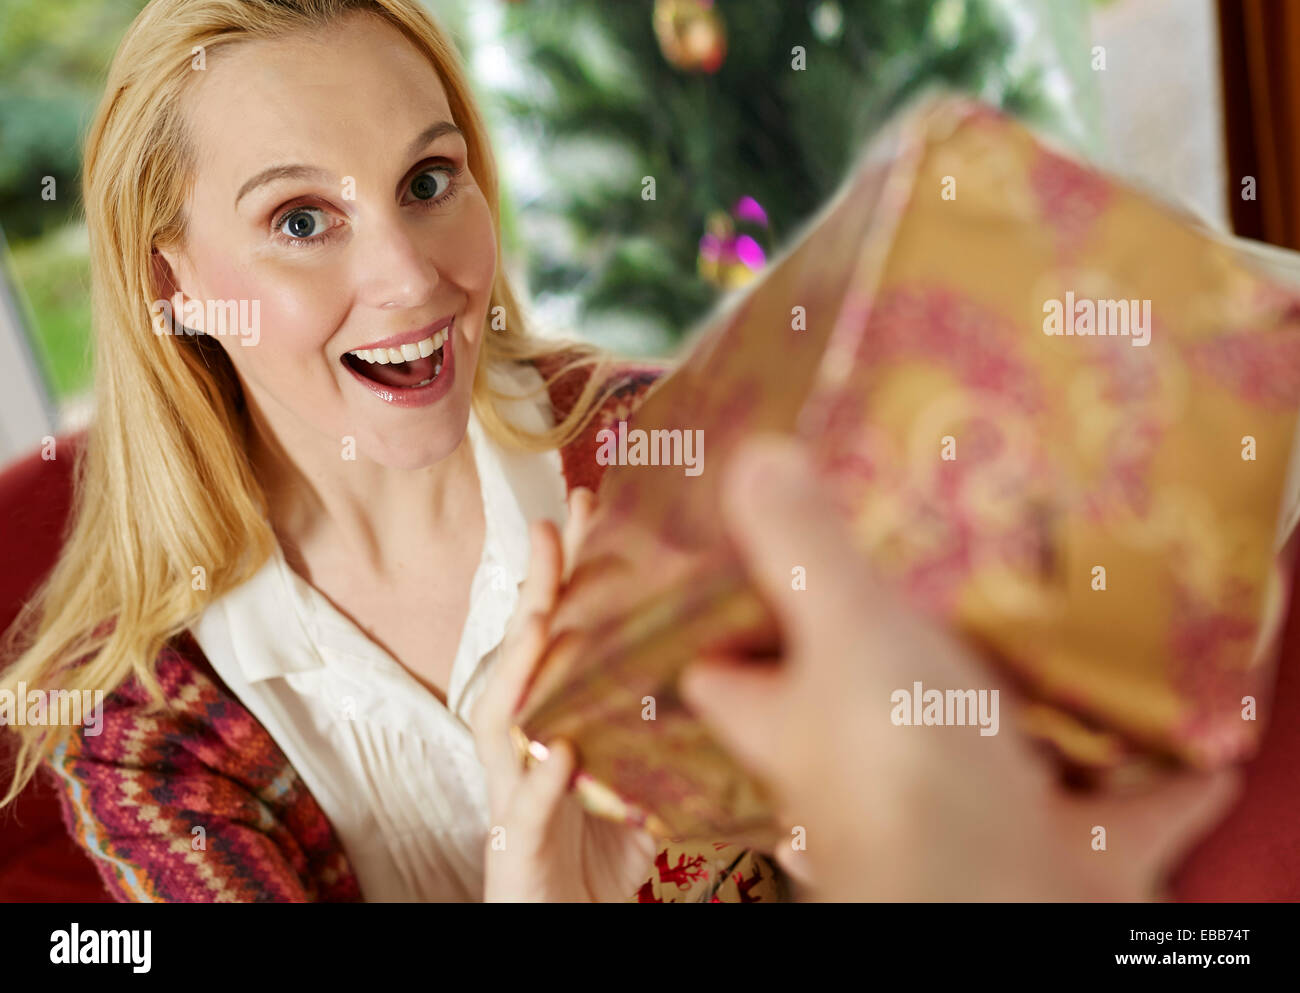 Woman receiving present - Stock Image